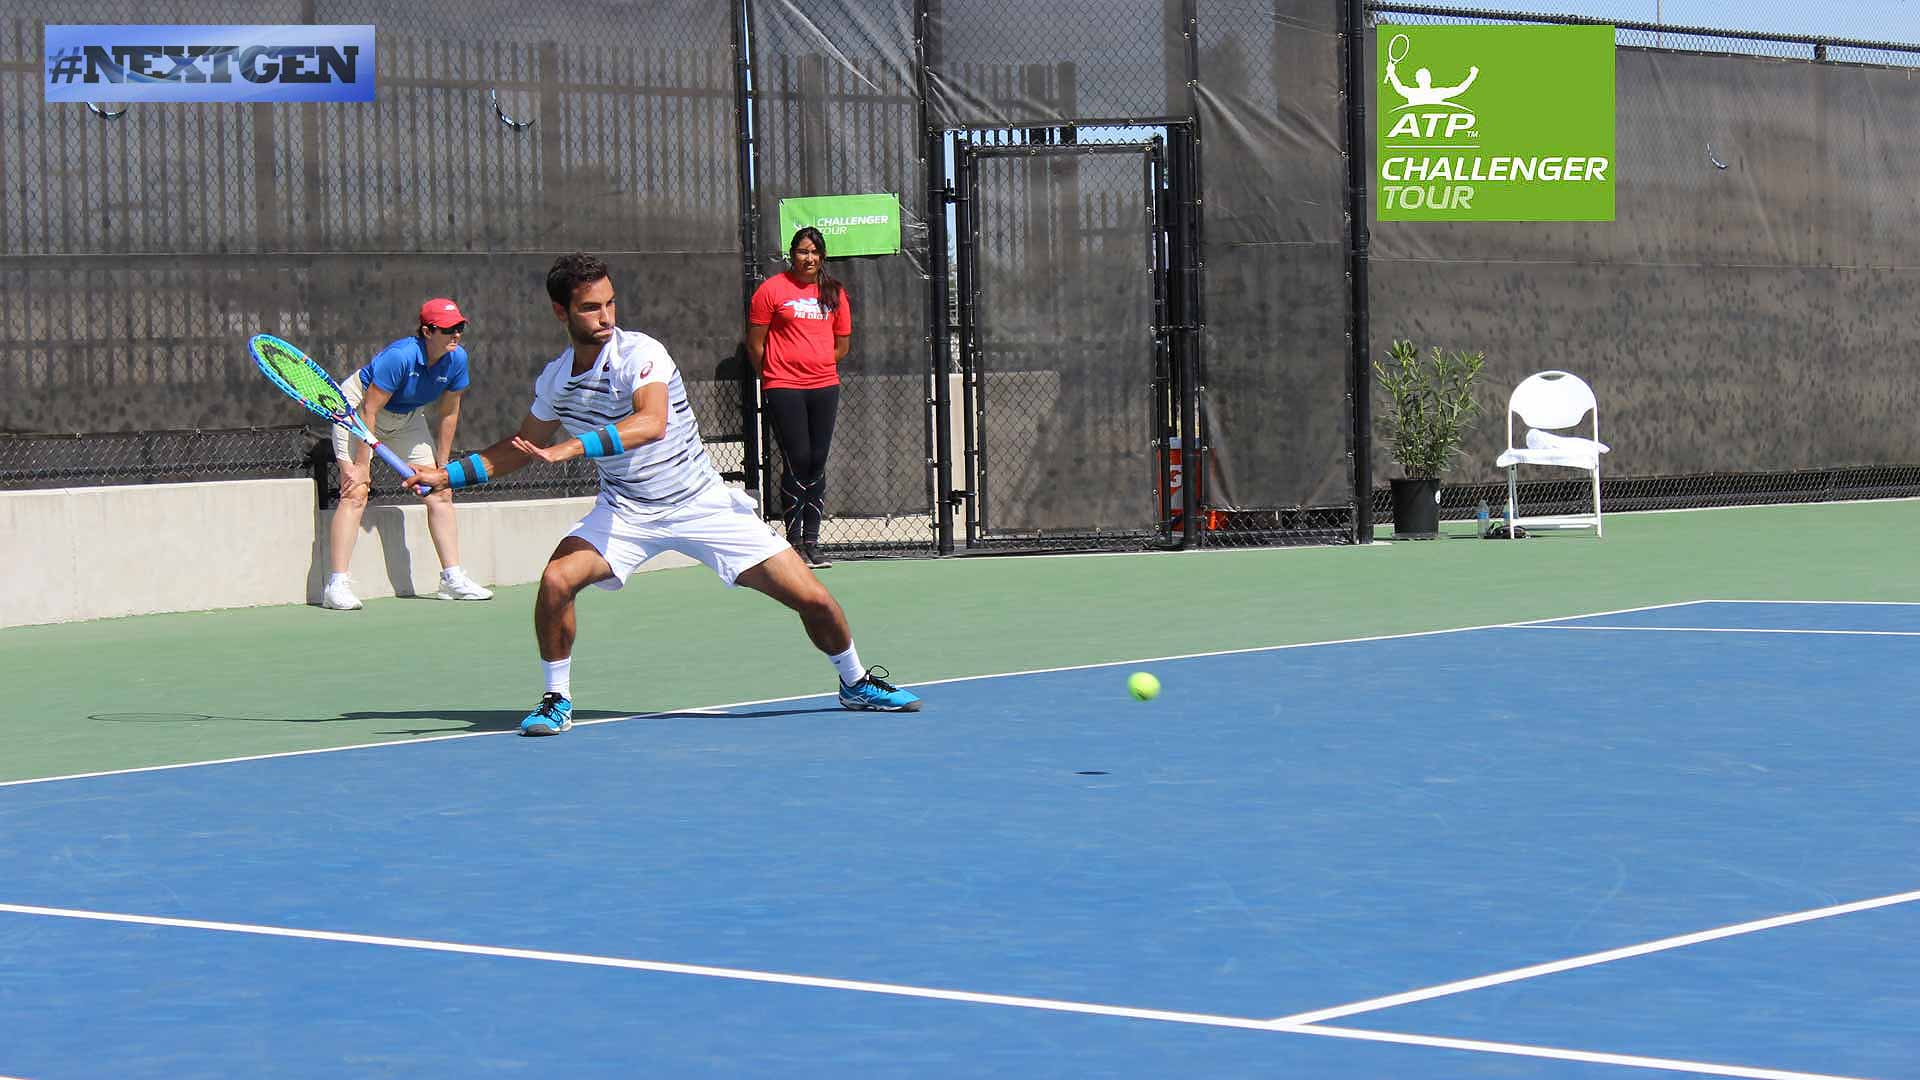 NextGen star Noah Rubin is healthy and playing top tennis at the ATP Challenger Tour event in Stockton.